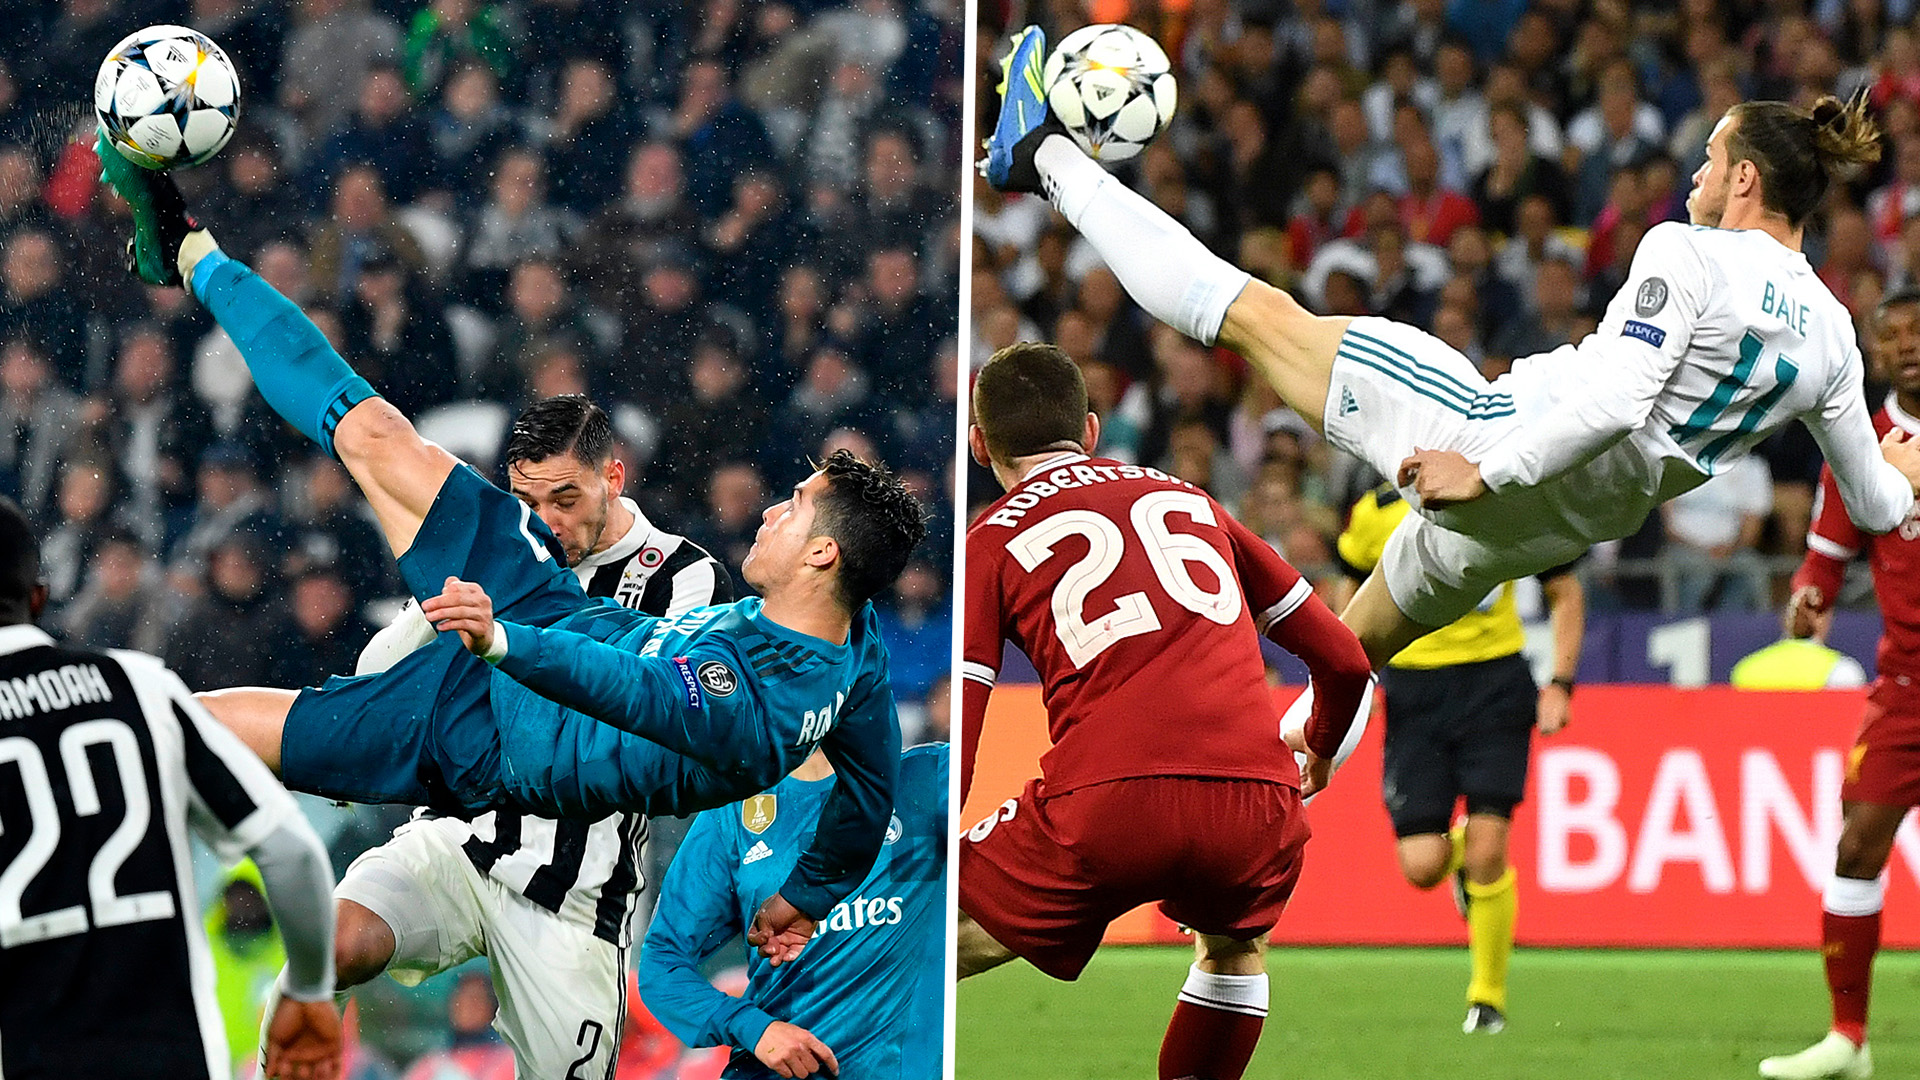 Cristiano Ronaldo S Overhead Kick Effort For Real Madrid Leads The Uefa Goal Of The Season Nominees But Gareth Bale Is Snubbed Goal Com